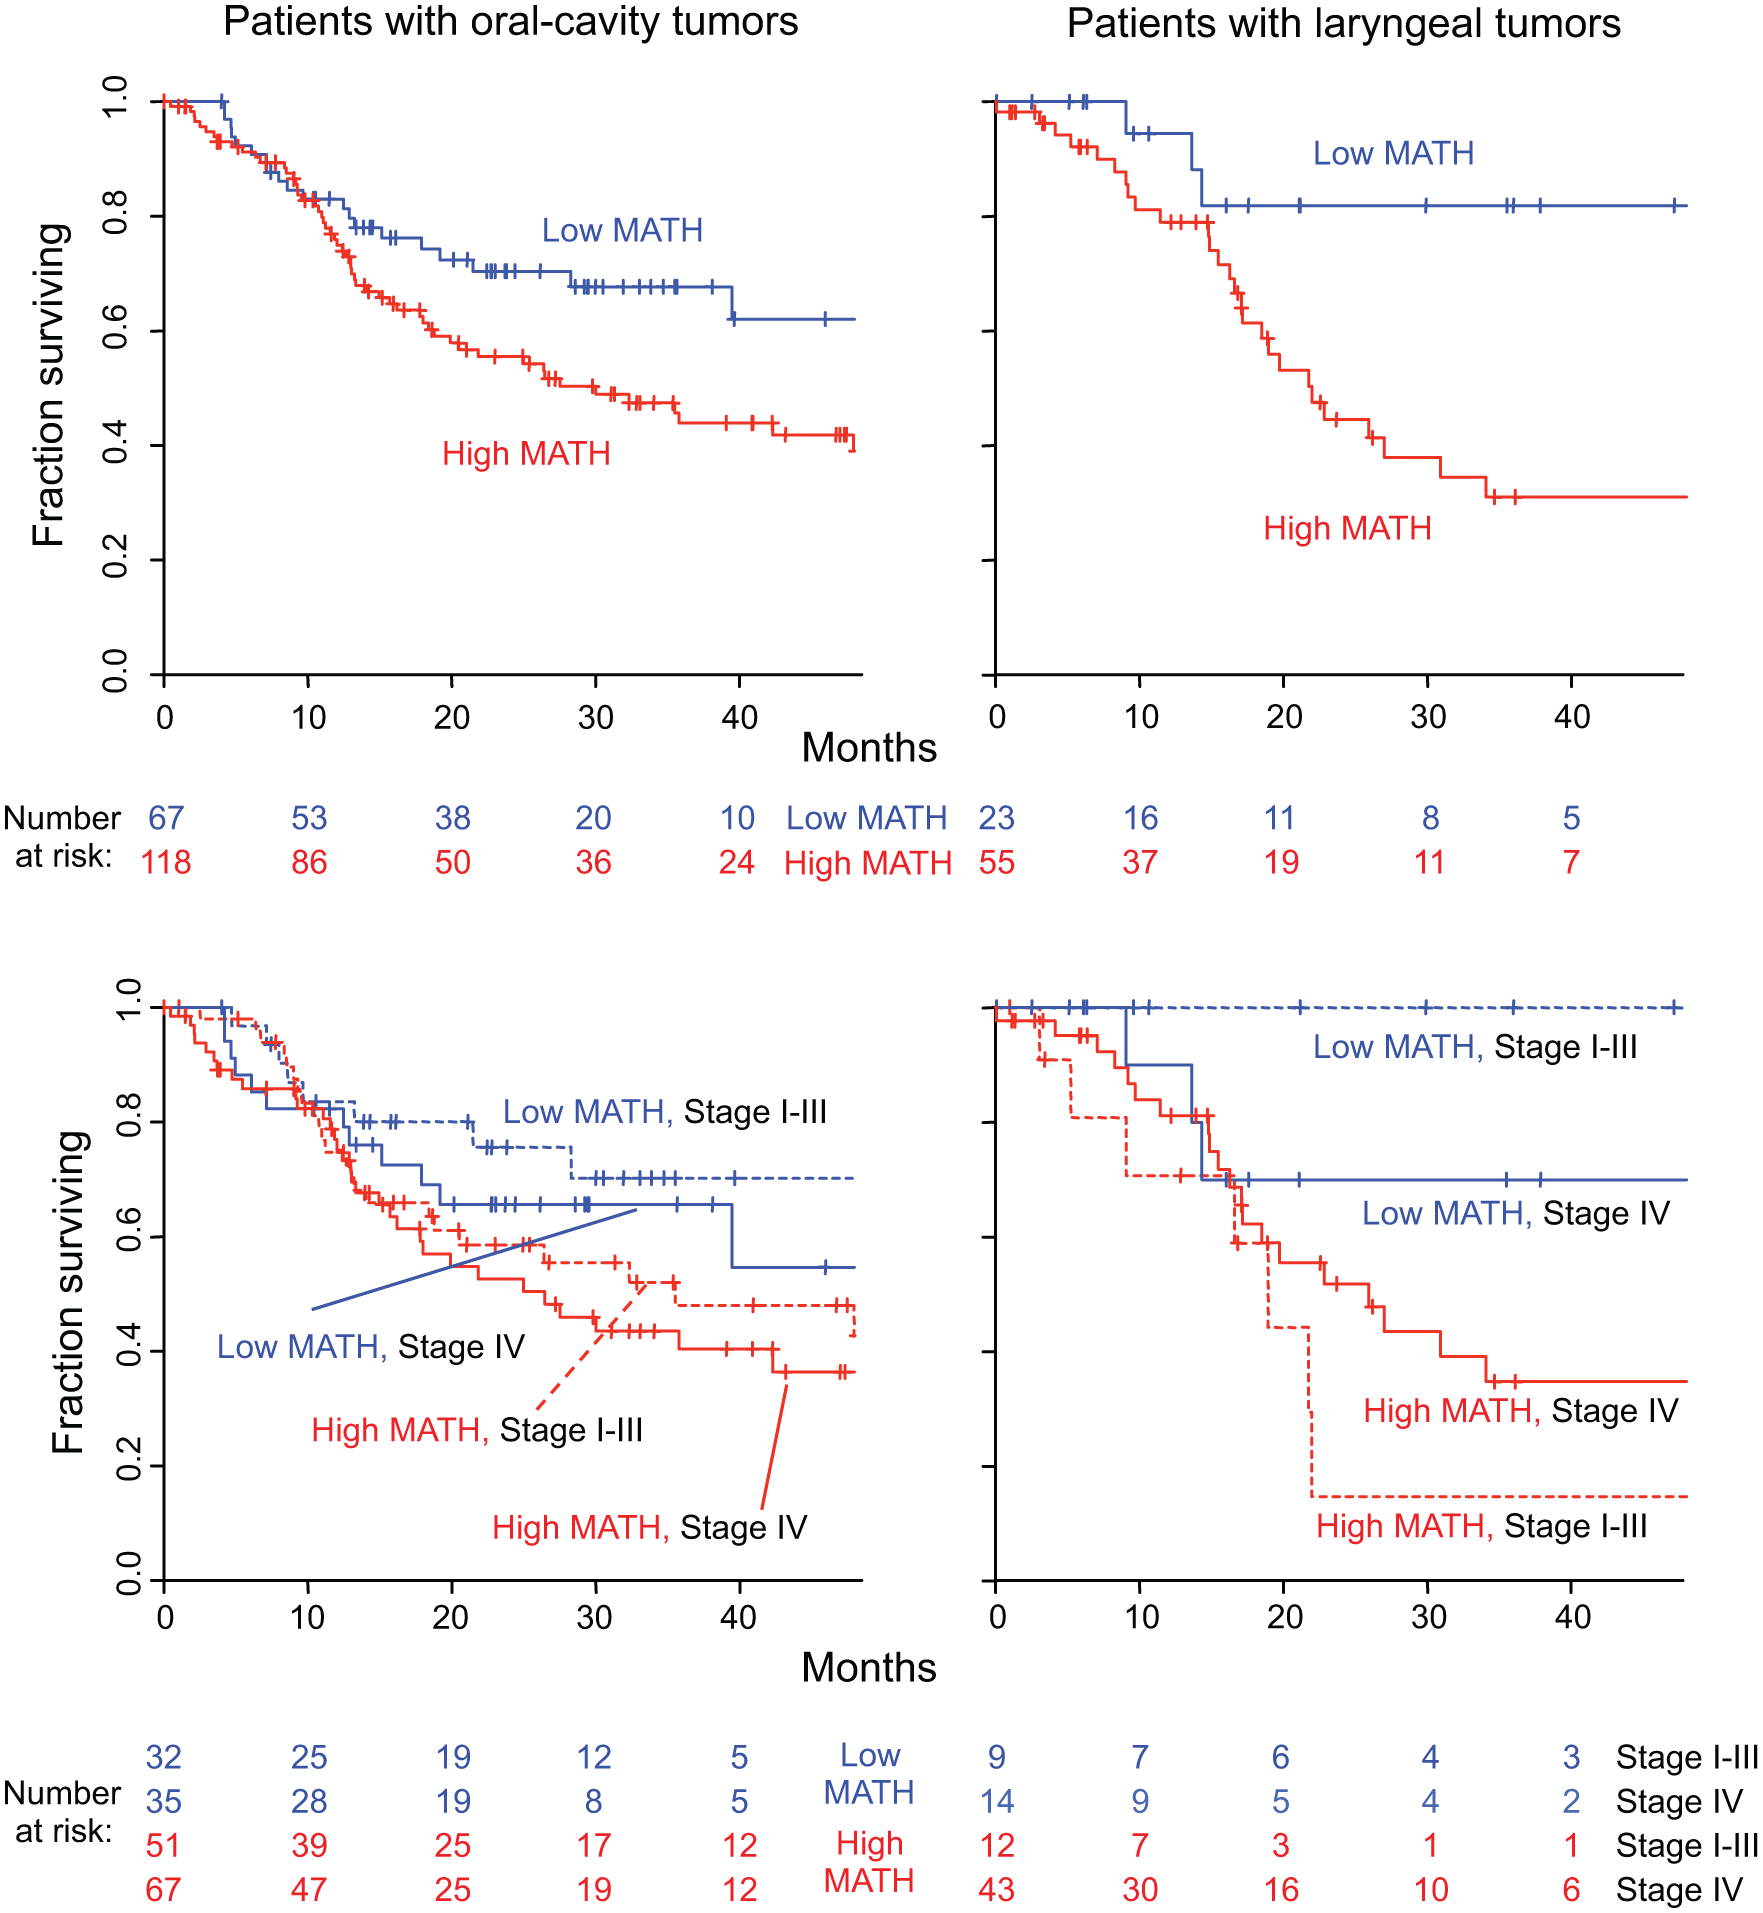 MATH value and mortality in patients with tumors in the oral cavity or the larynx.